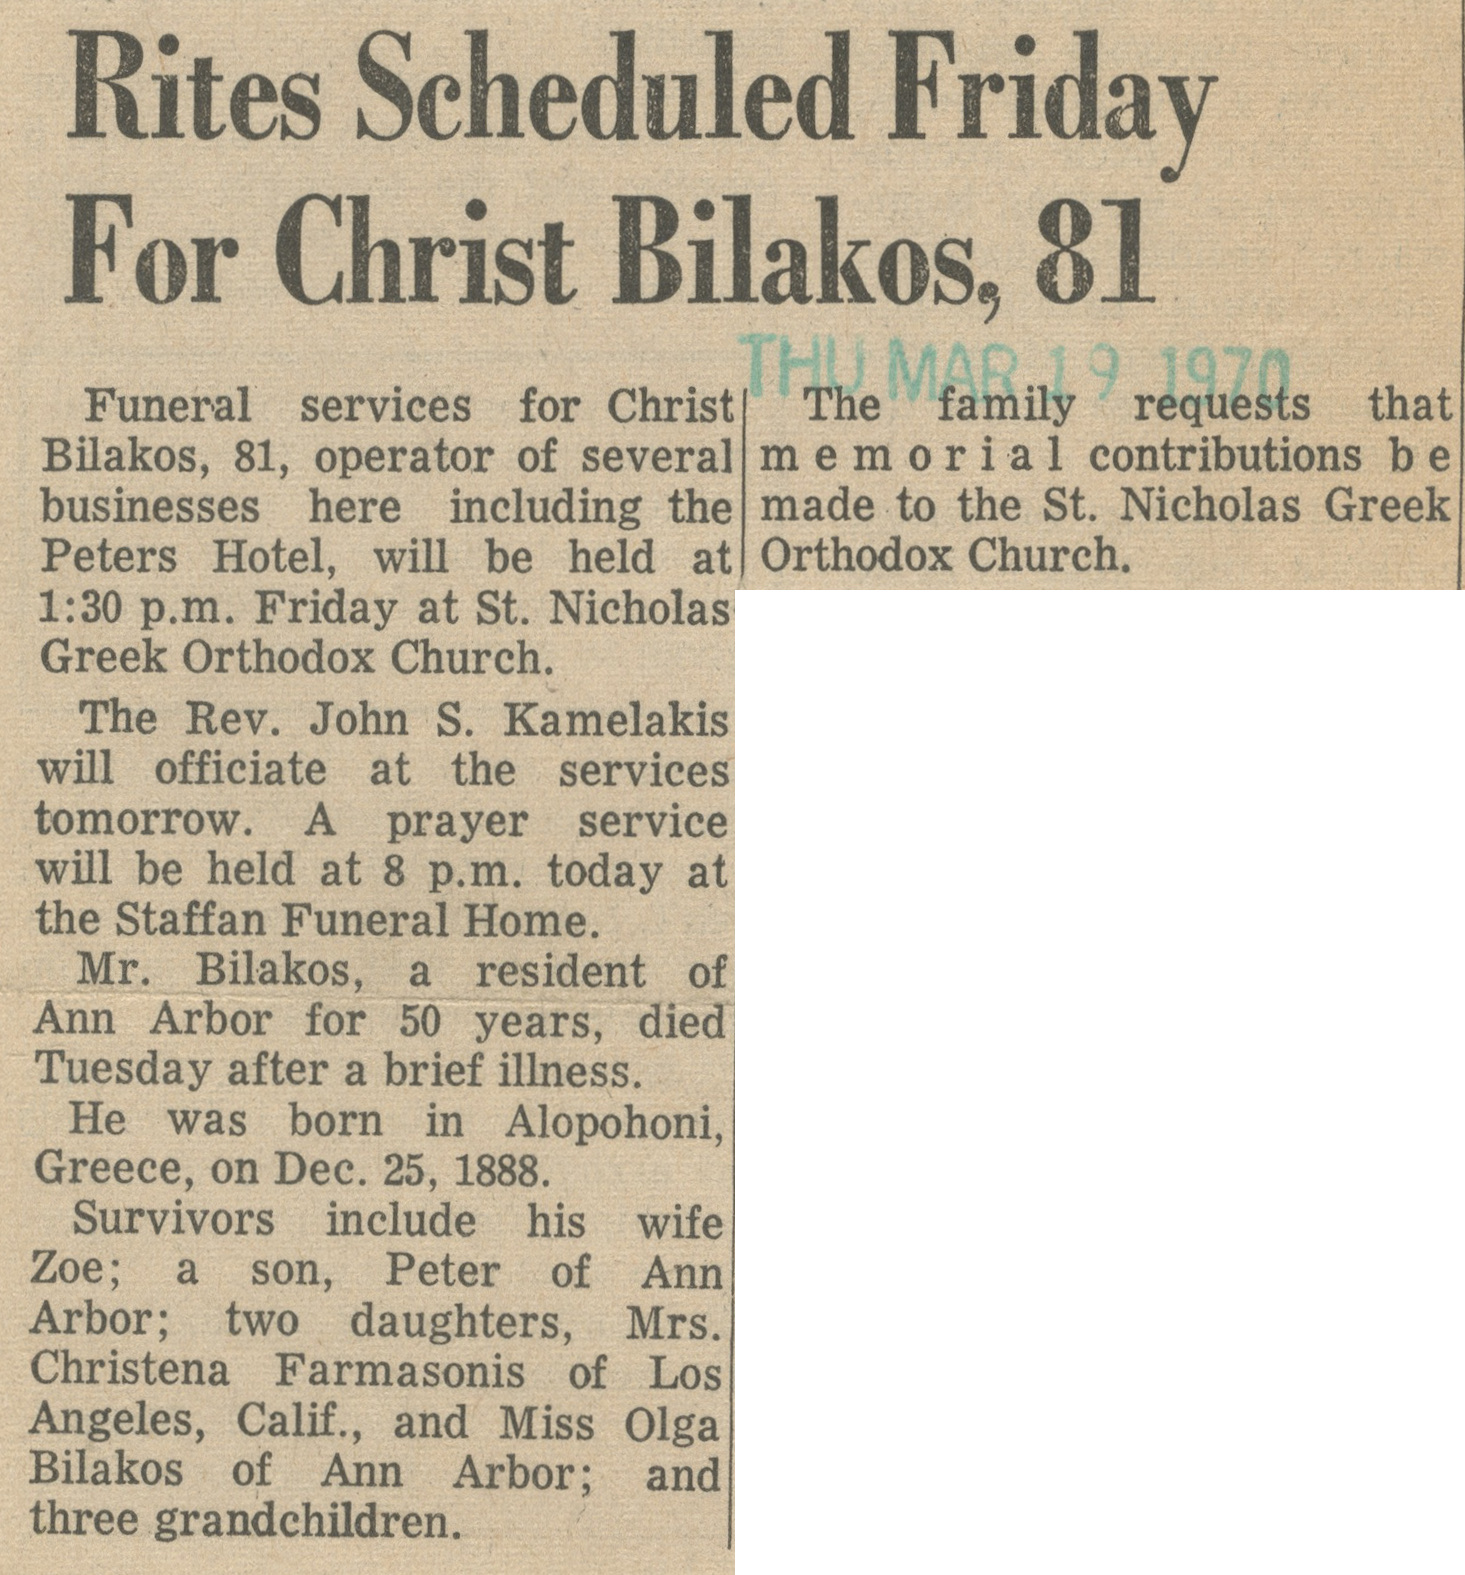 Rites Scheduled Friday For Christ Bilakos, 81 image